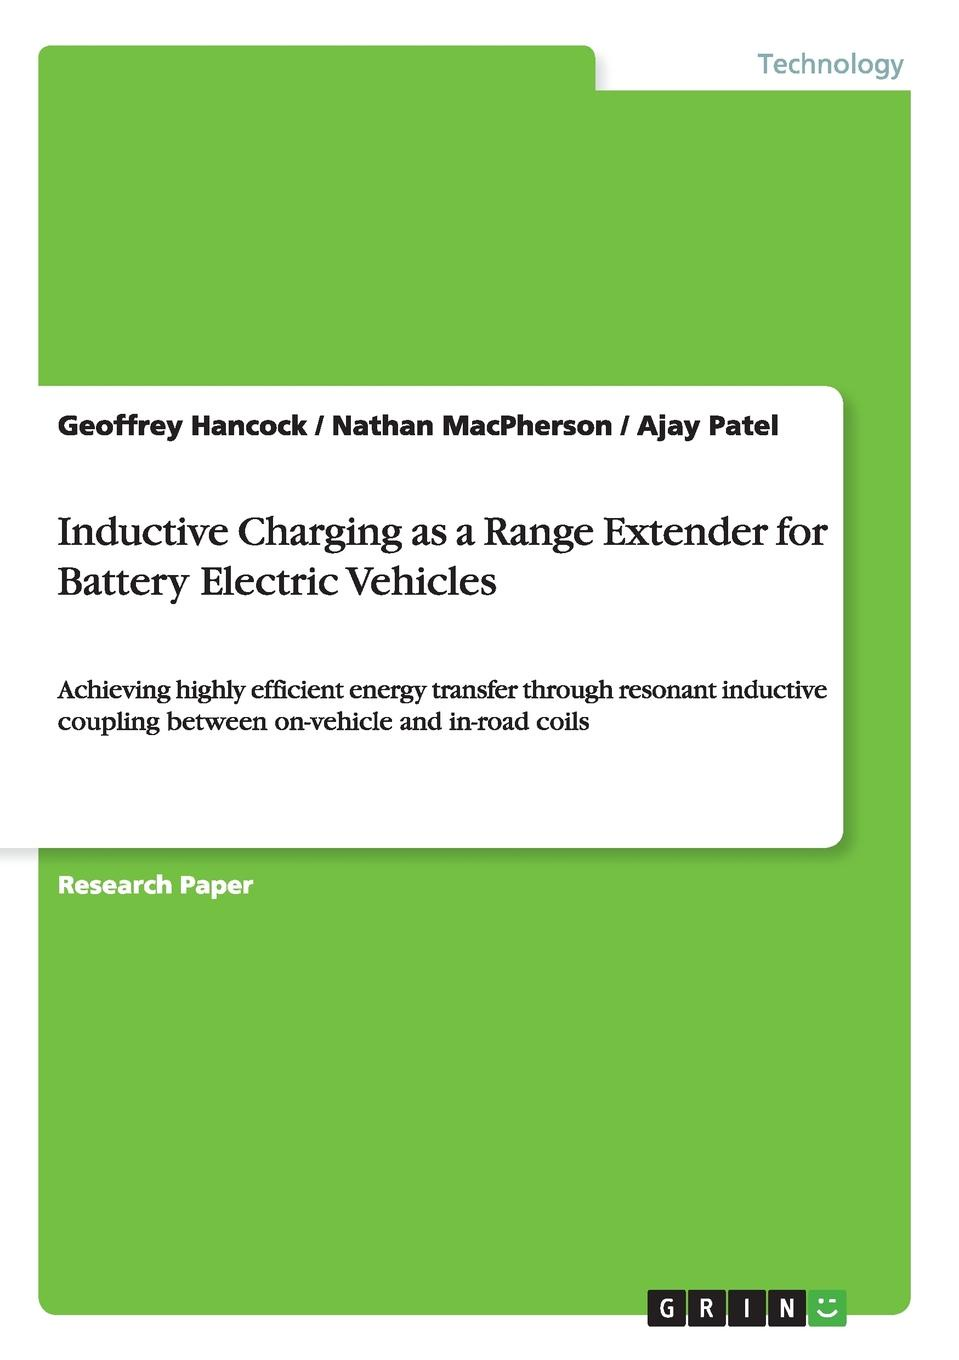 Geoffrey Hancock, Nathan MacPherson, Ajay Patel Inductive Charging as a Range Extender for Battery Electric Vehicles super magnet car gps gms gprs locator tracker system device vehicle long battery life waterproof